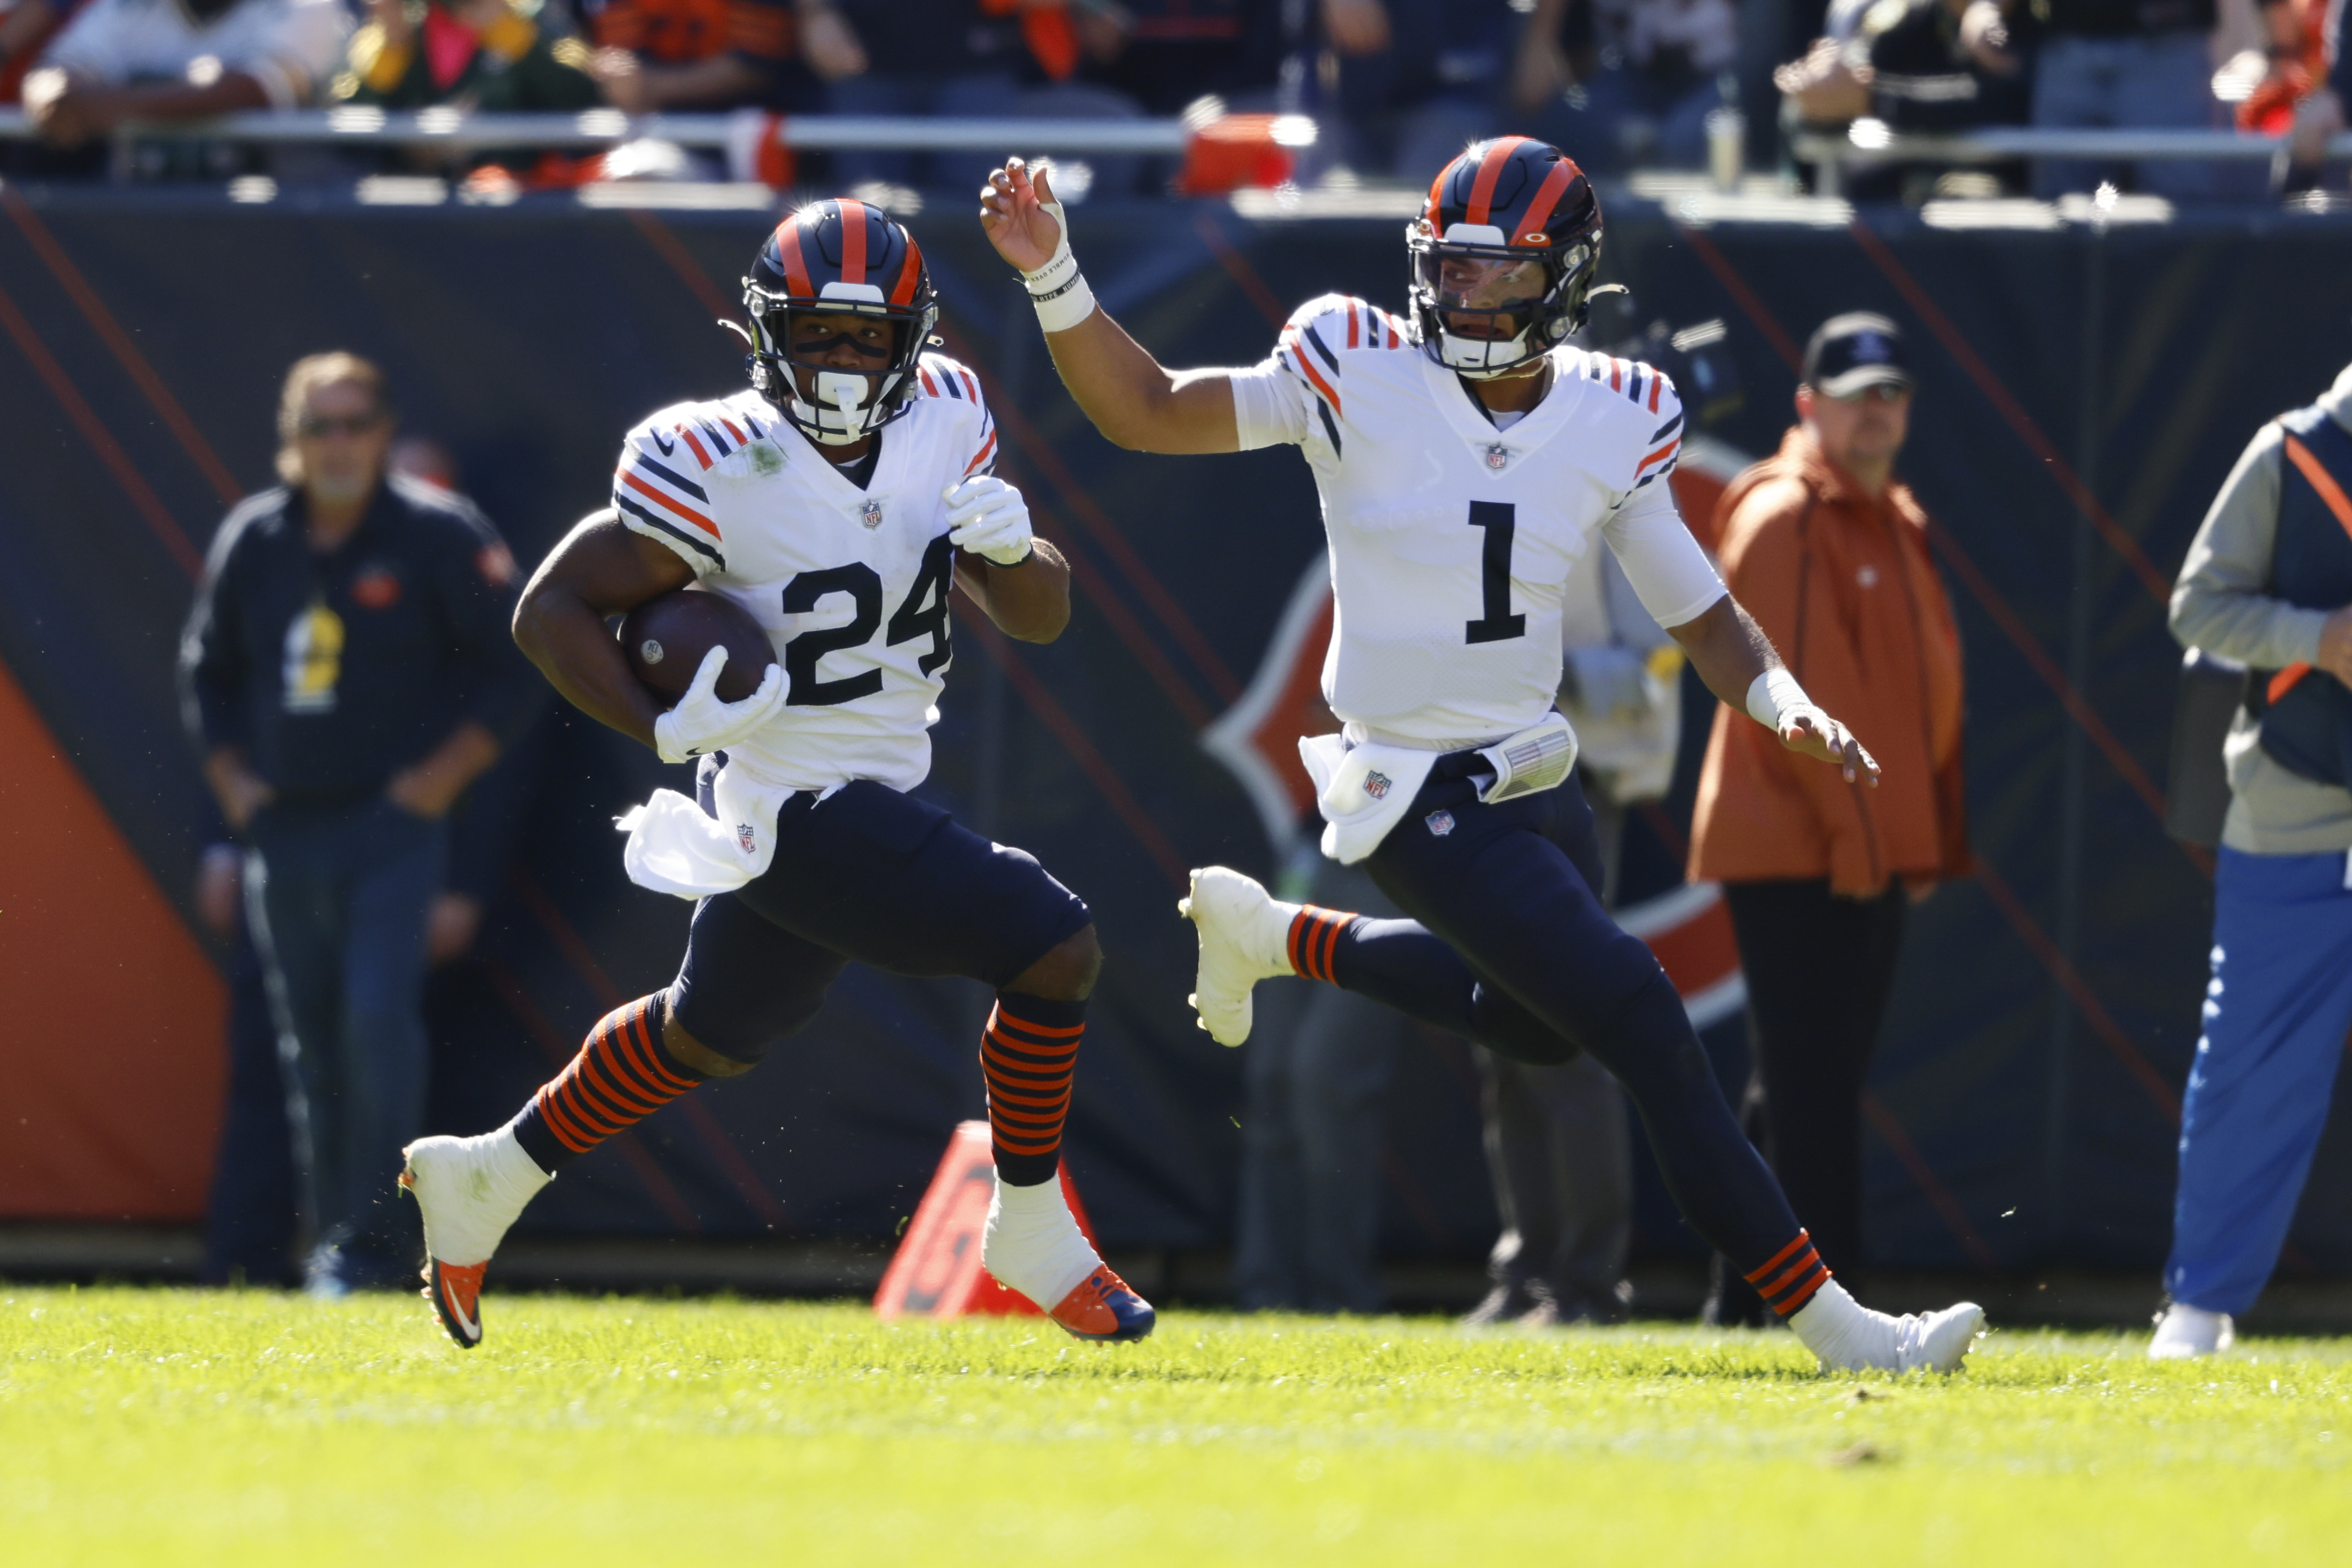 Bears rookie running back Khalil Herbert (24) had 19 carries for 97 yards and one-yard touchdown in the Bears' 24-14 loss to the Packers last week at Soldier Field.